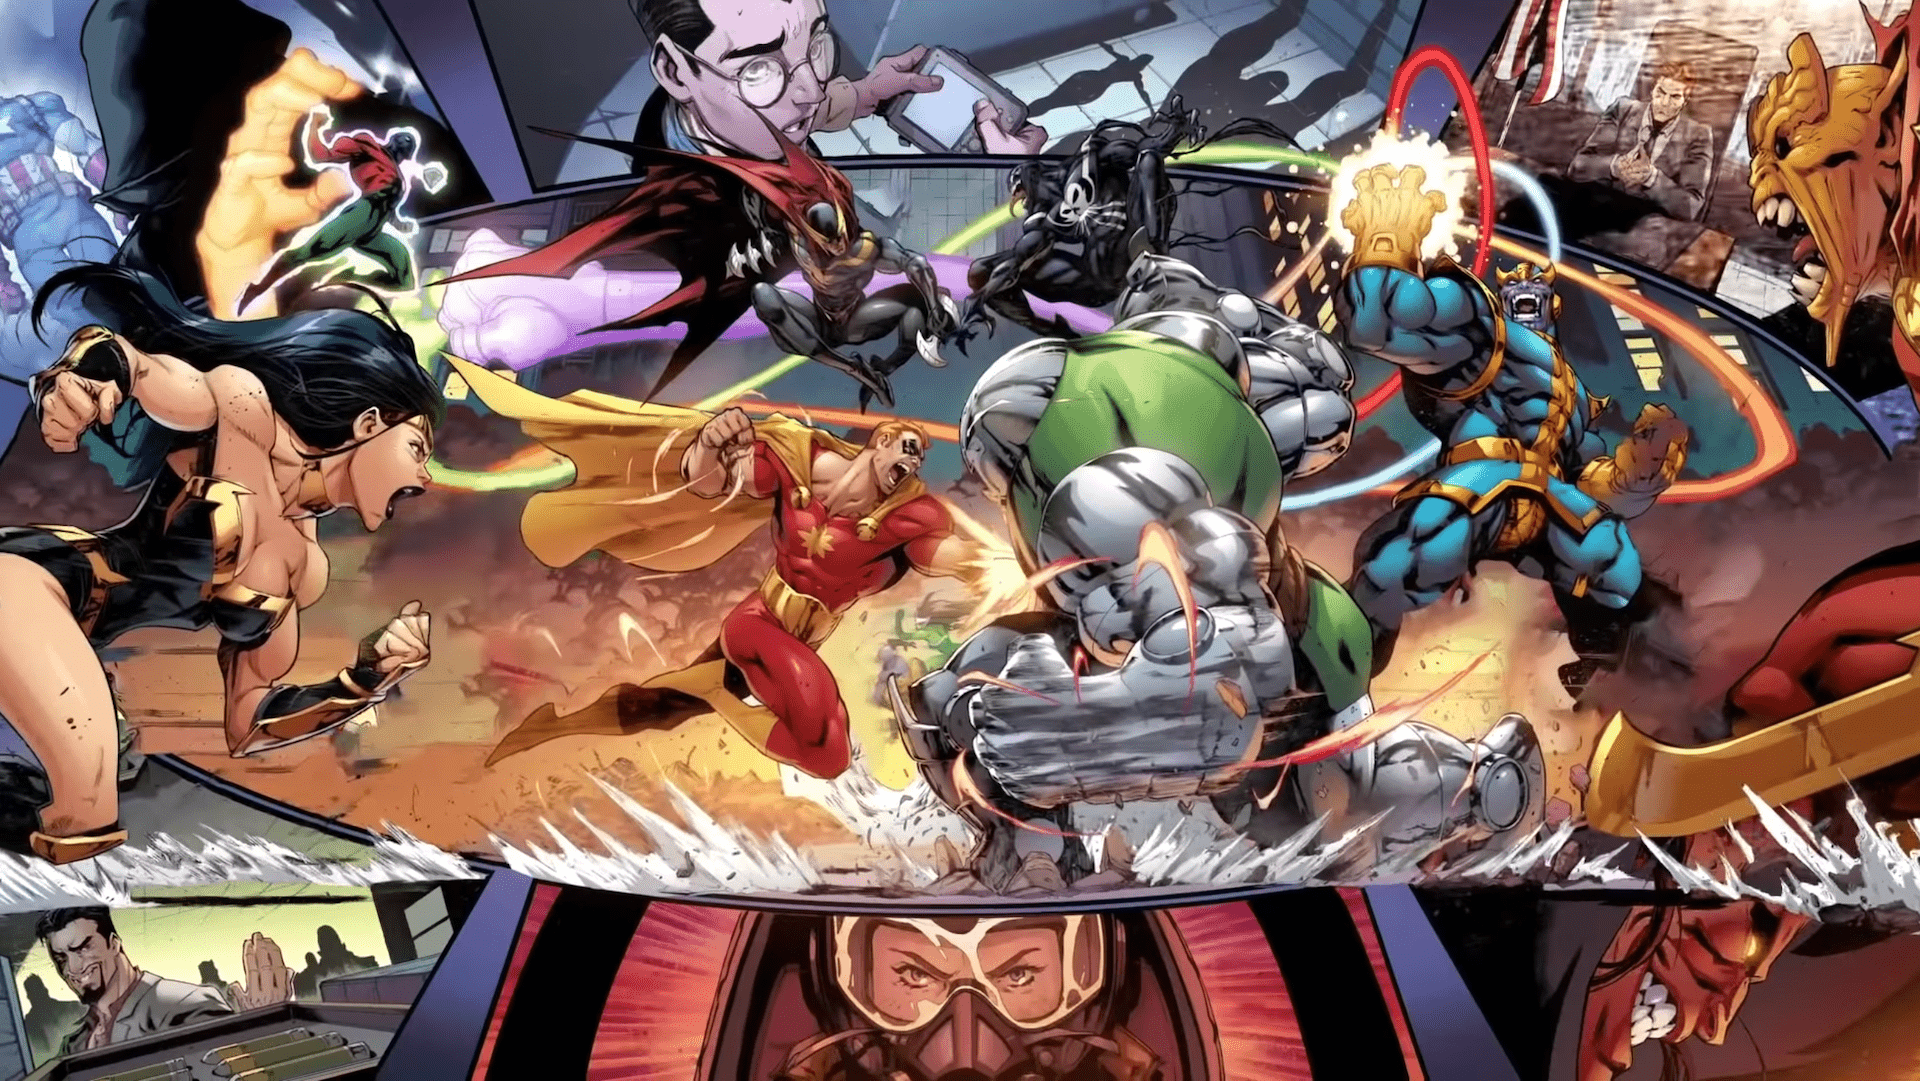 Marvel Comics drops 'Heroes Reborn' trailer revealing a world without the Avengers